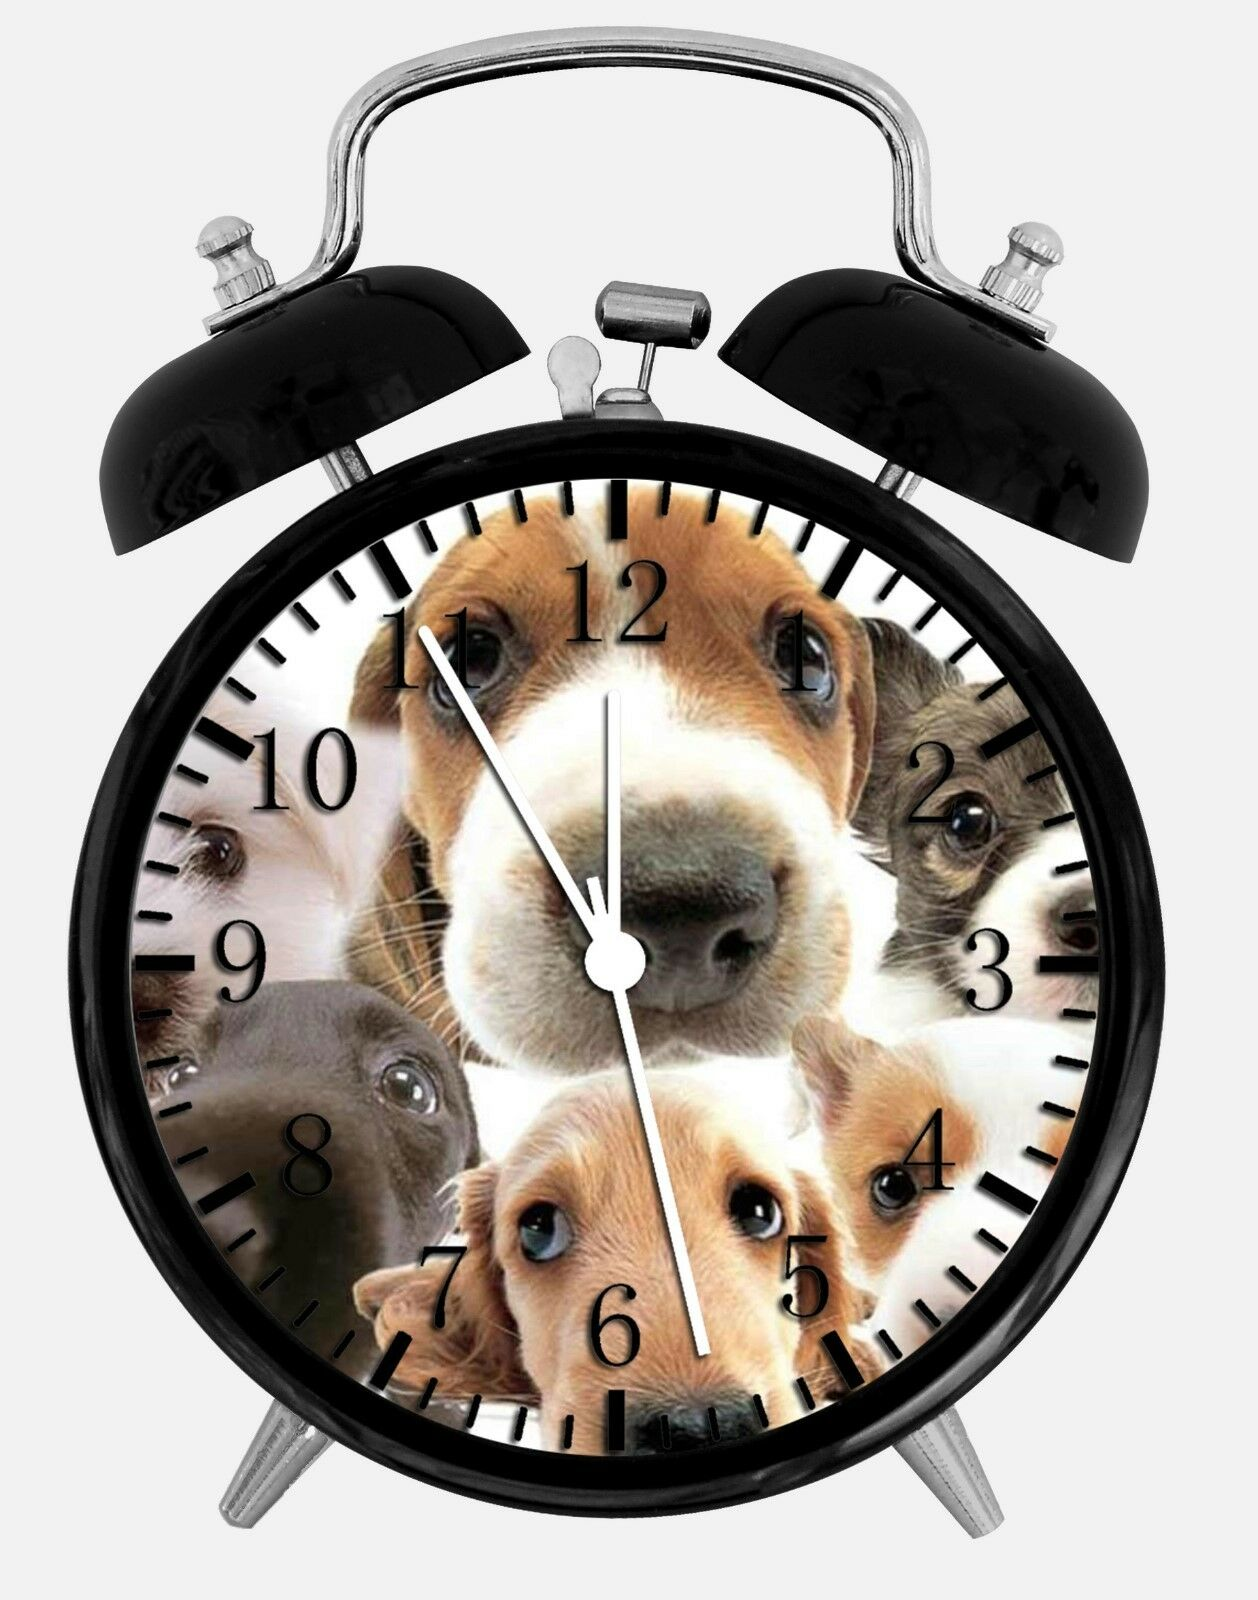 """Cute Puppy Dog Alarm Desk Clock 3.75"""" Home or Office Decor W71 Nice For Gift"""